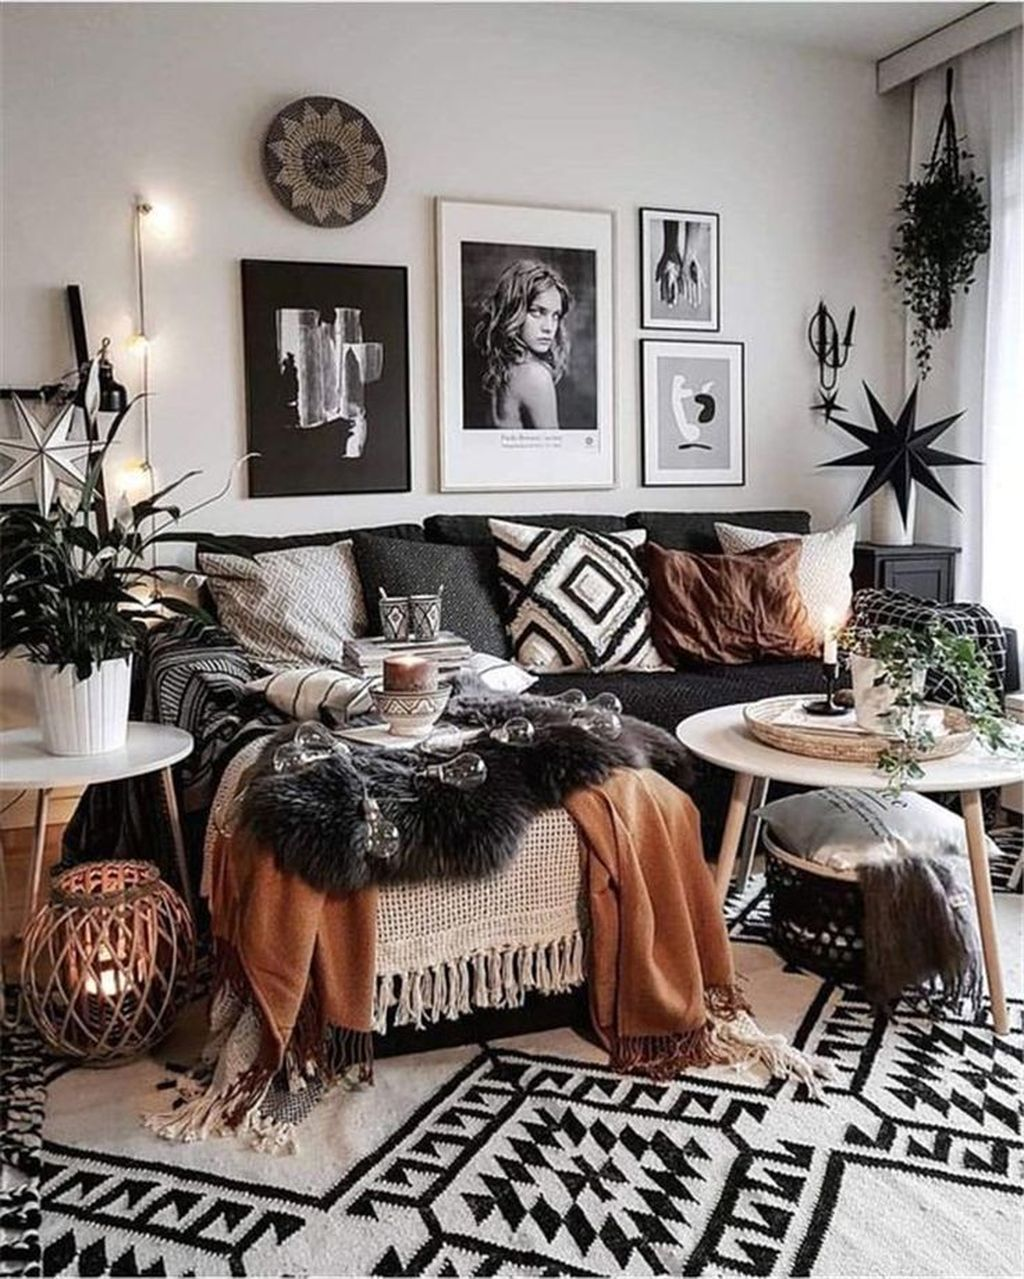 The Best Rustic Bohemian Living Room Decor Ideas 09